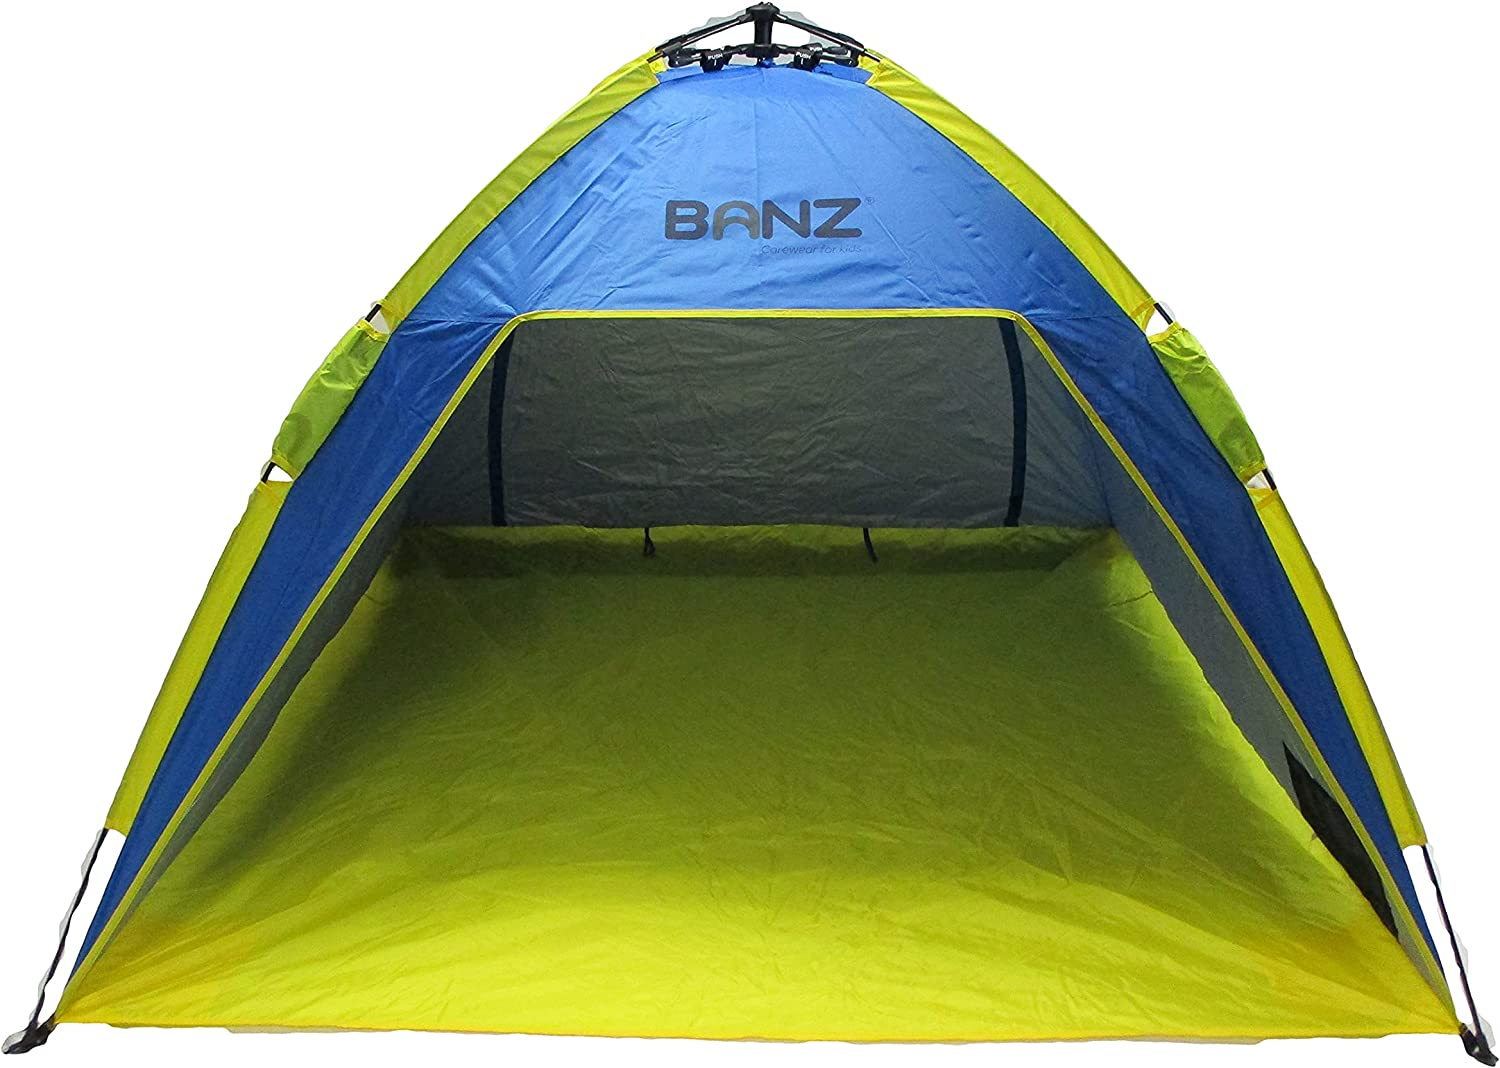 BANZ San Diego Mall UV Protective Tent Beach Super special price